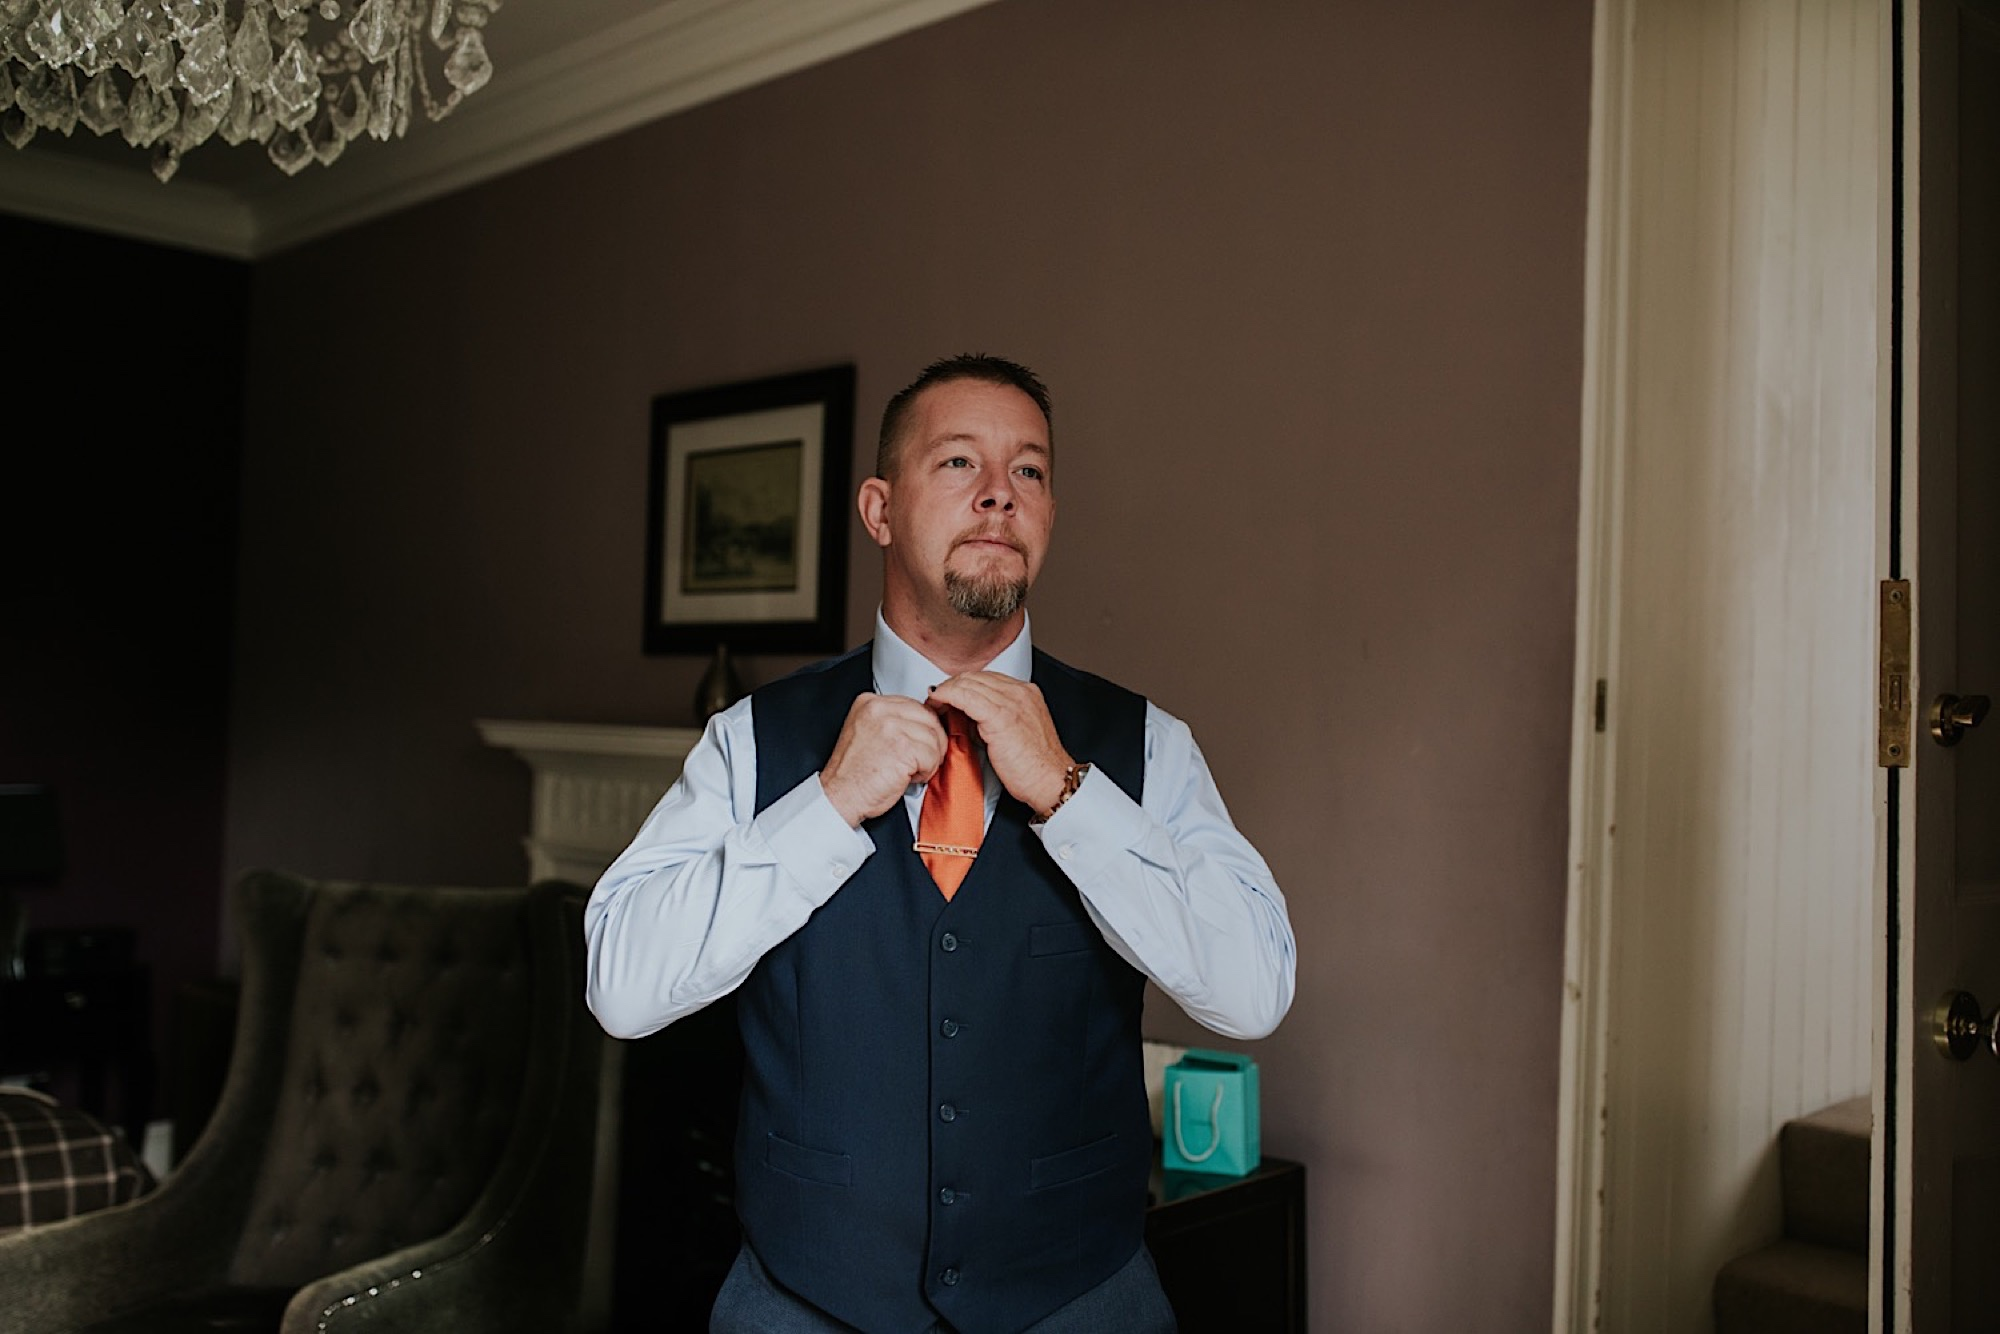 groom getting ready on his wedding day